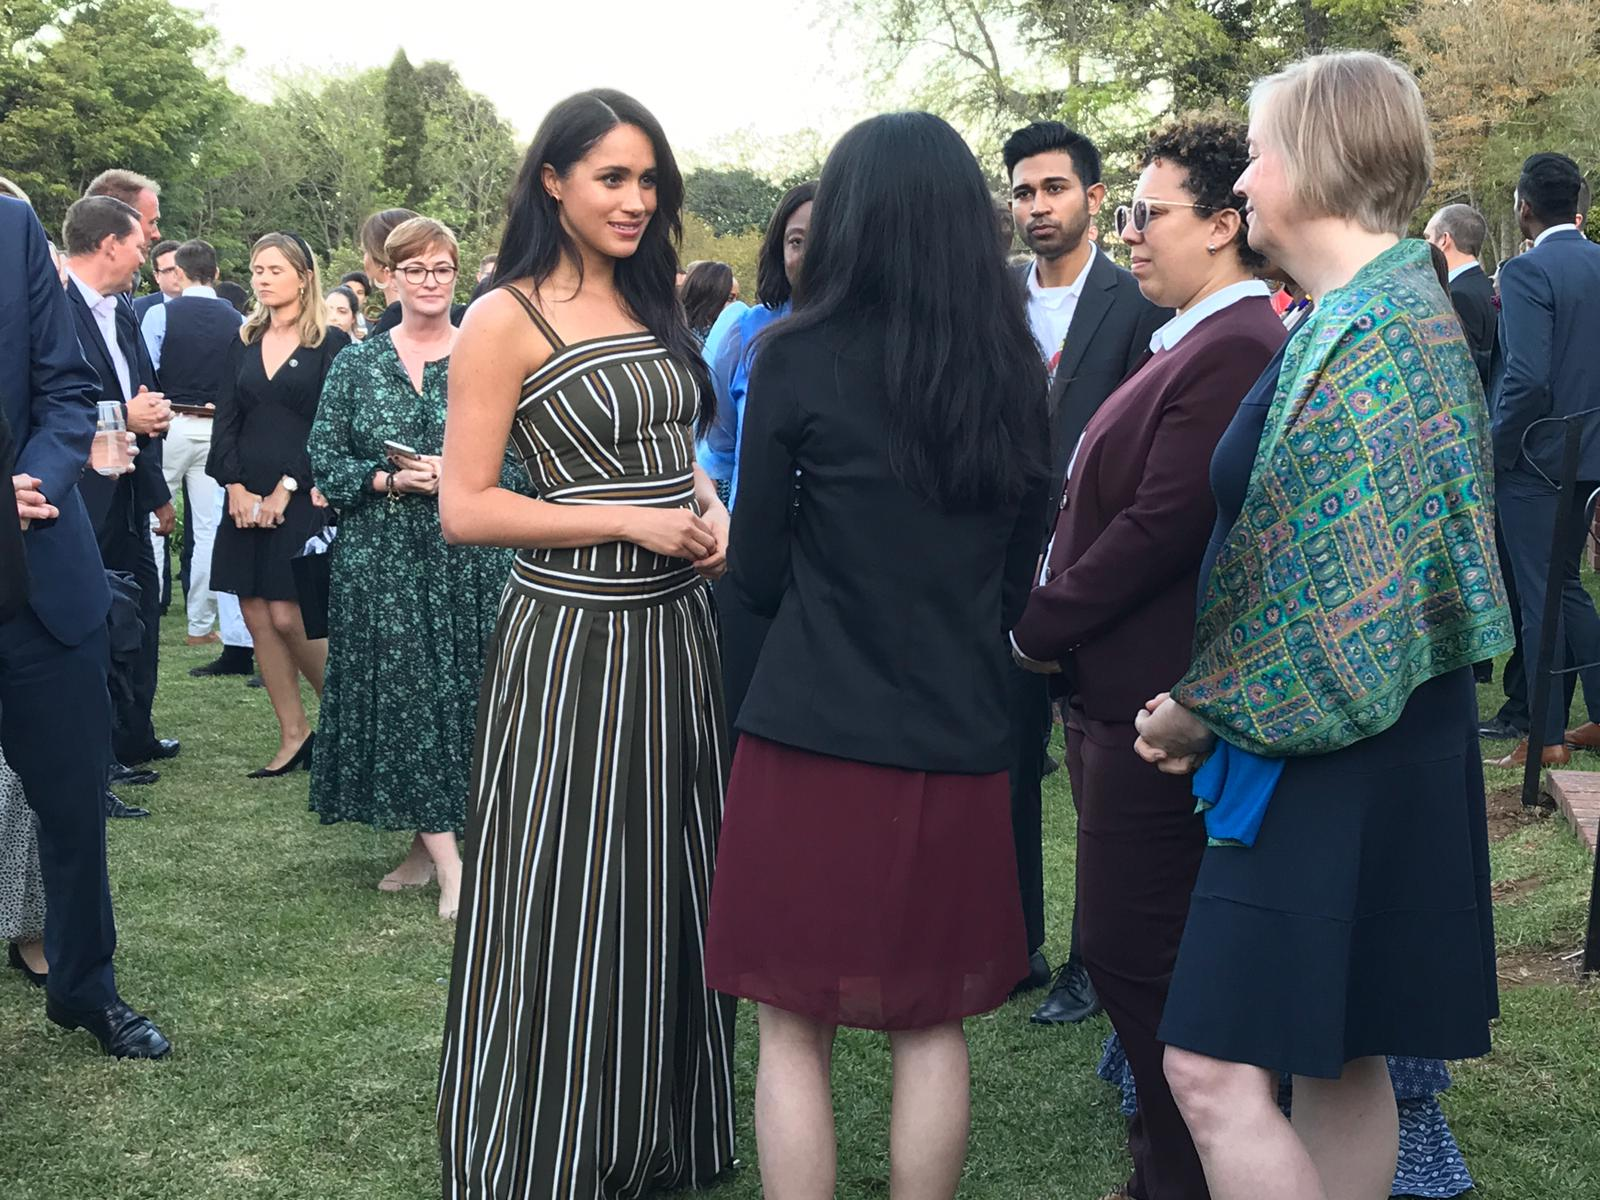 Meghan, Duchess of Sussex, chats with attendees during a reception celebrating young people in Cape Town, South Africa on Tuesday evening.